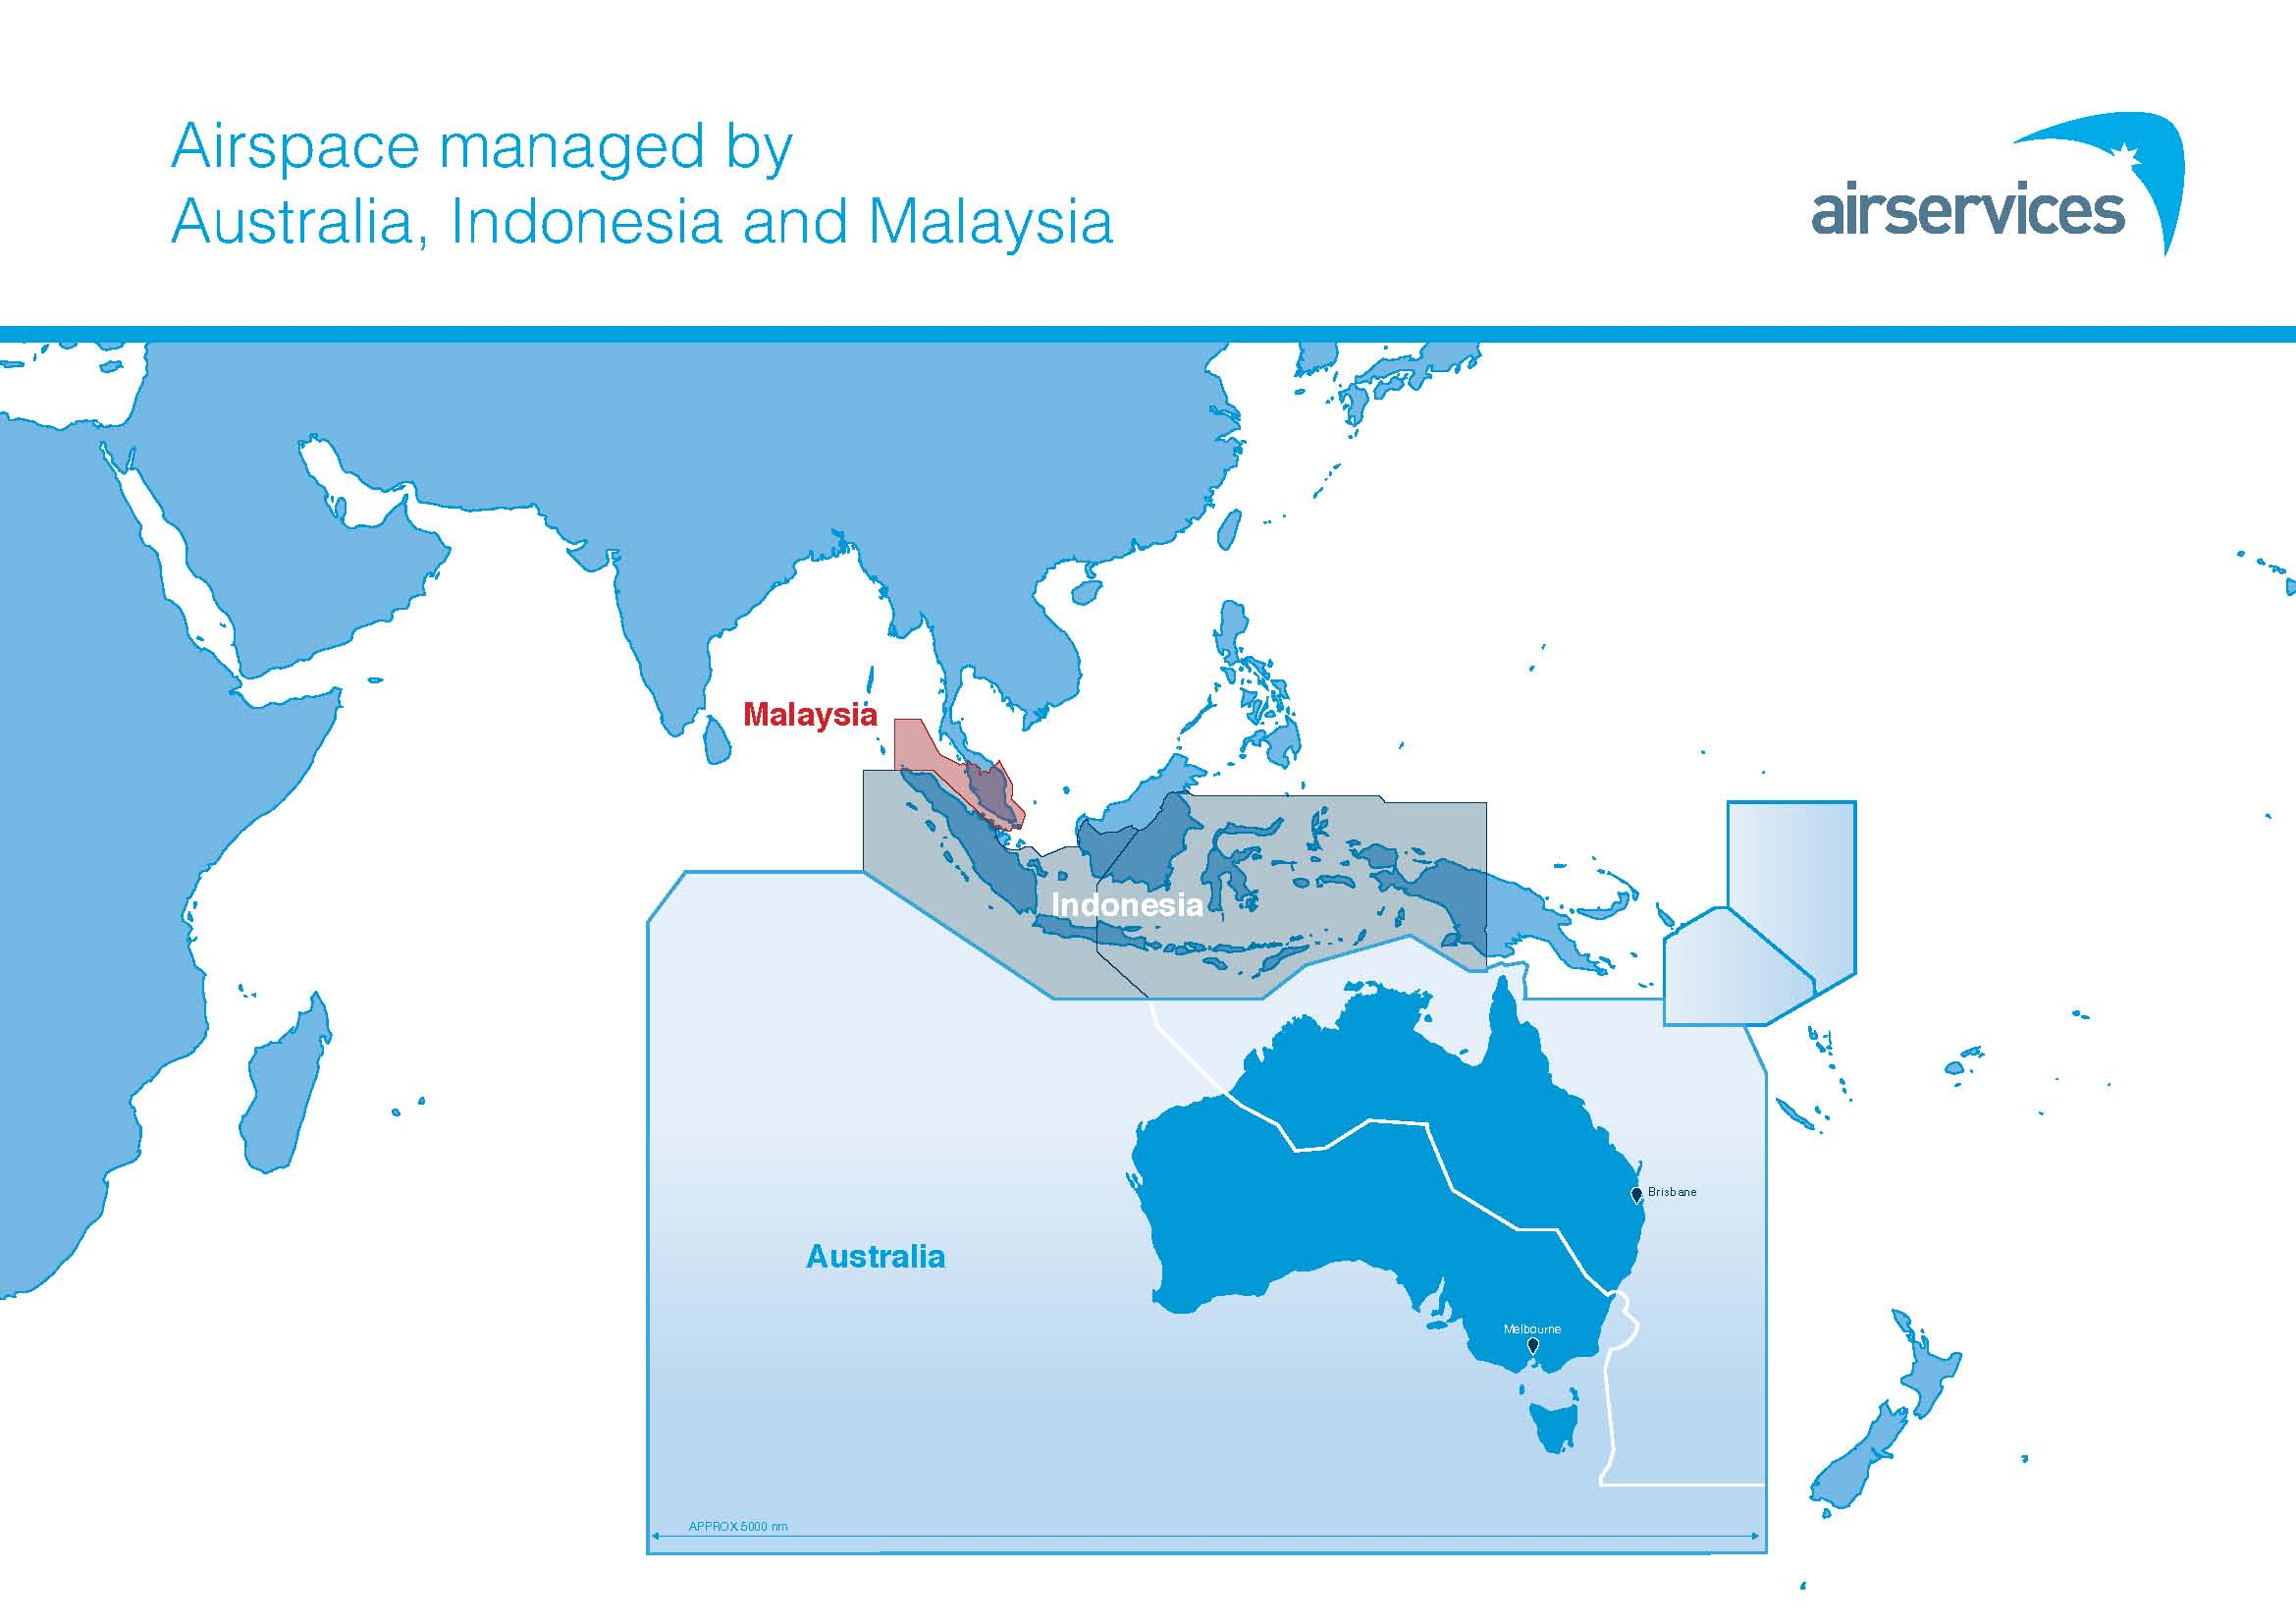 mobile tracking map with Airservices Australia Leads Aircraft Tracking Trial Using Ads C on Brand caudalie in addition indooratlas additionally 8496621480 besides Big Data Analytics 27981097 likewise Clients.